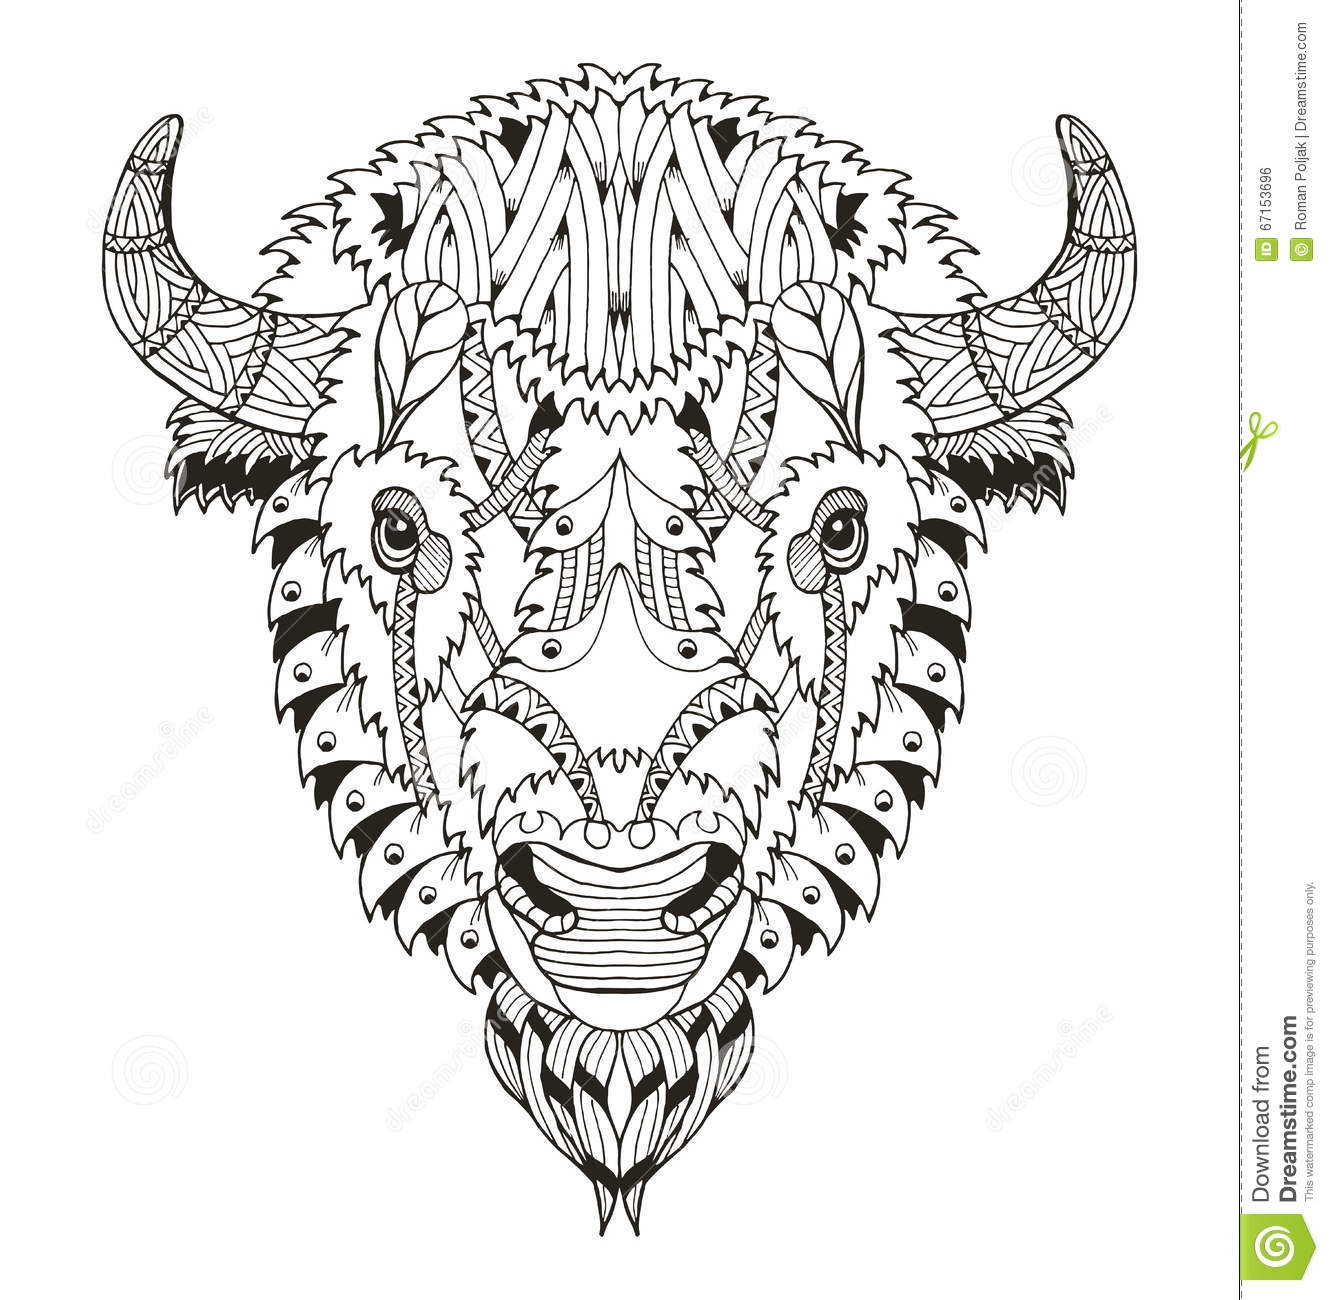 wildlife coloring pages - stock illustration american buffalo head zentangle stylized vector illustration freehand pencil hand drawn pattern zen art ornate lace image